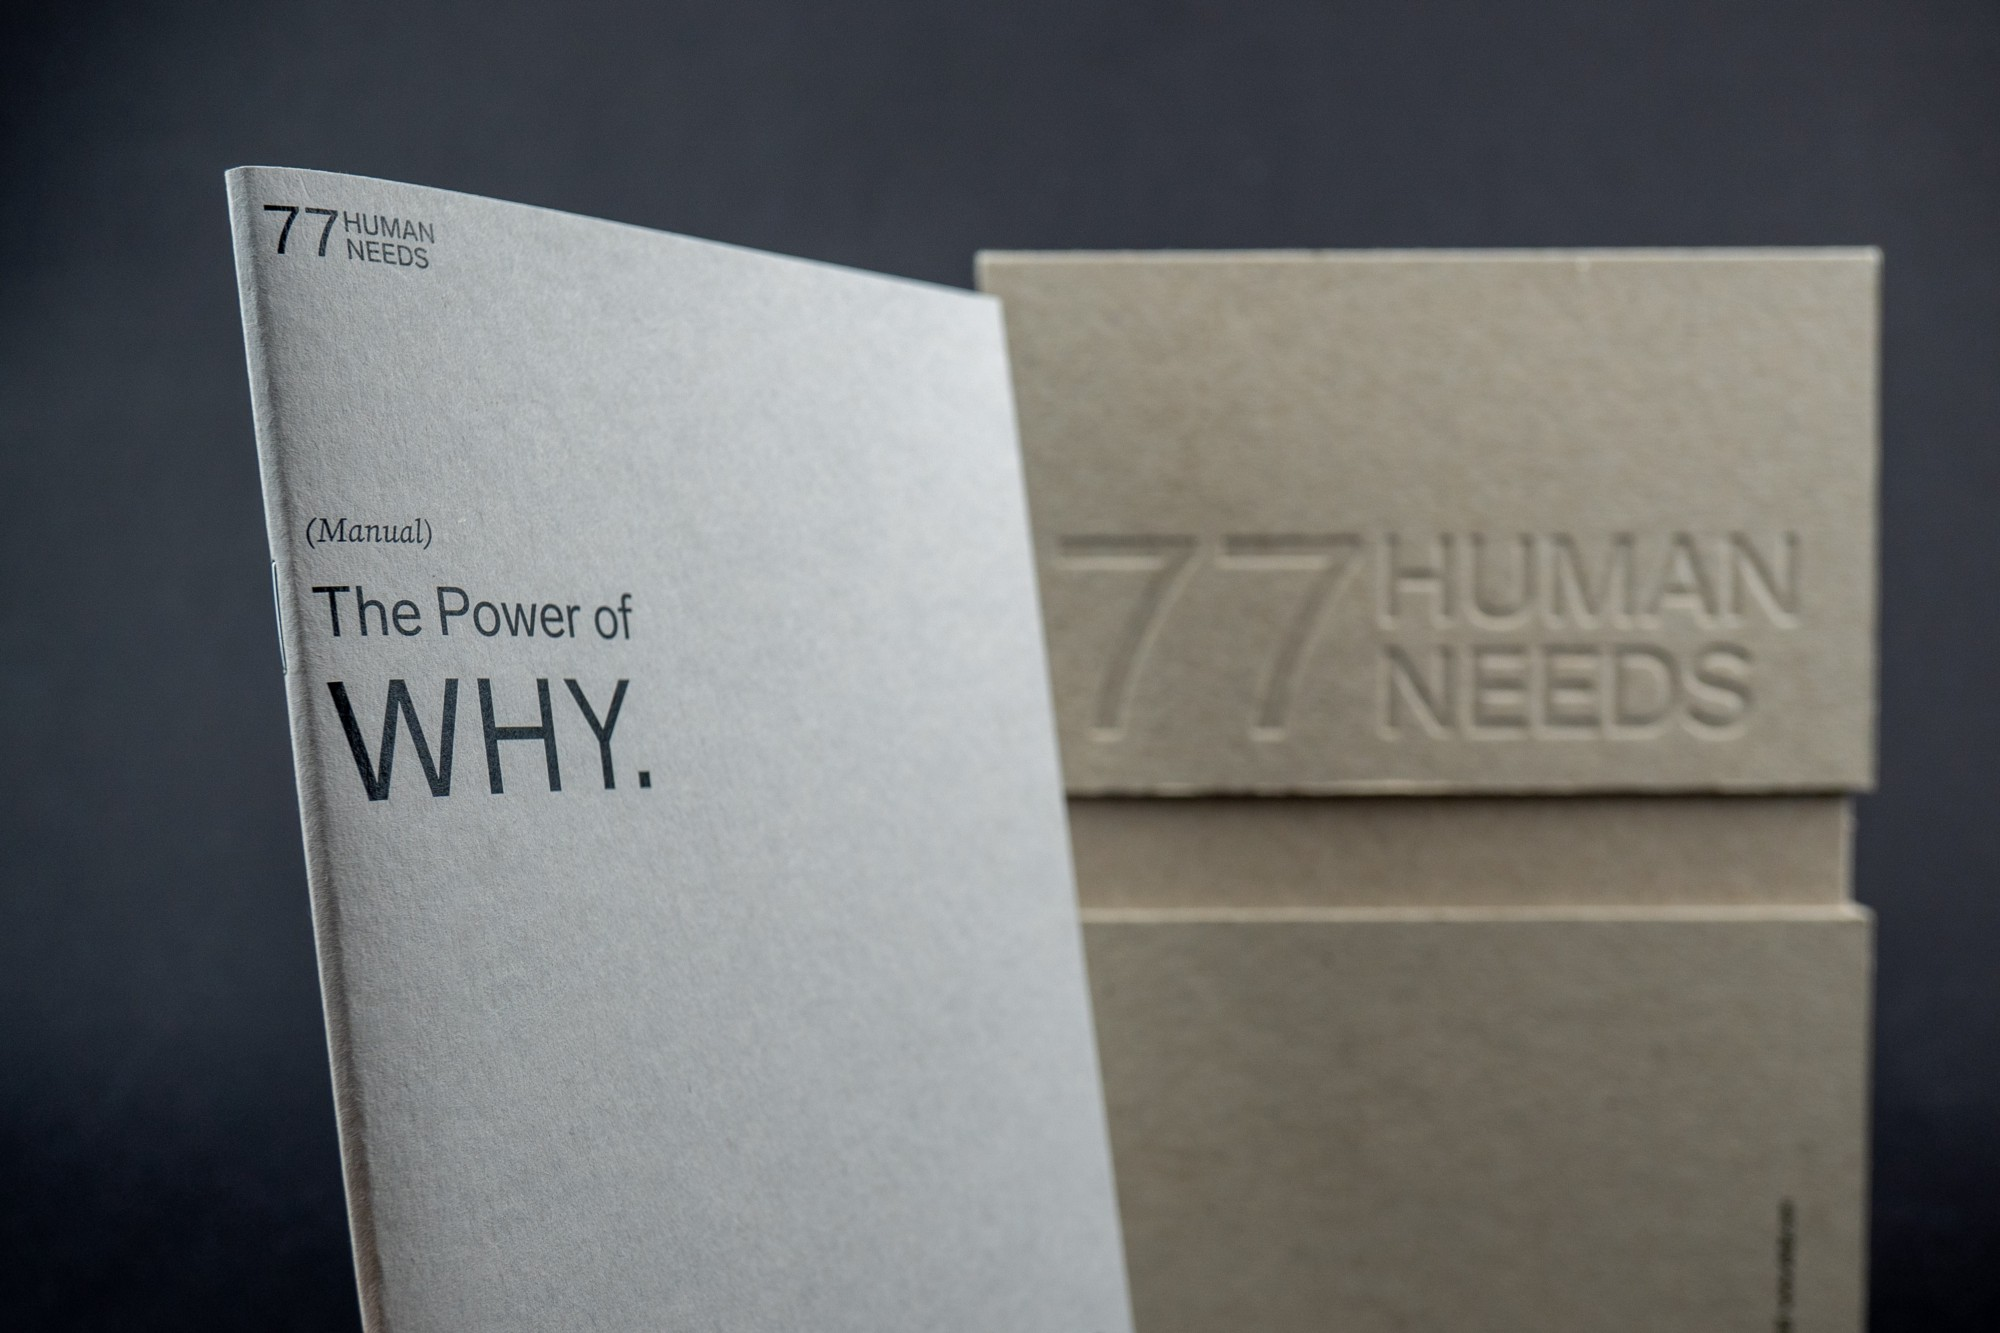 A book about the power of why